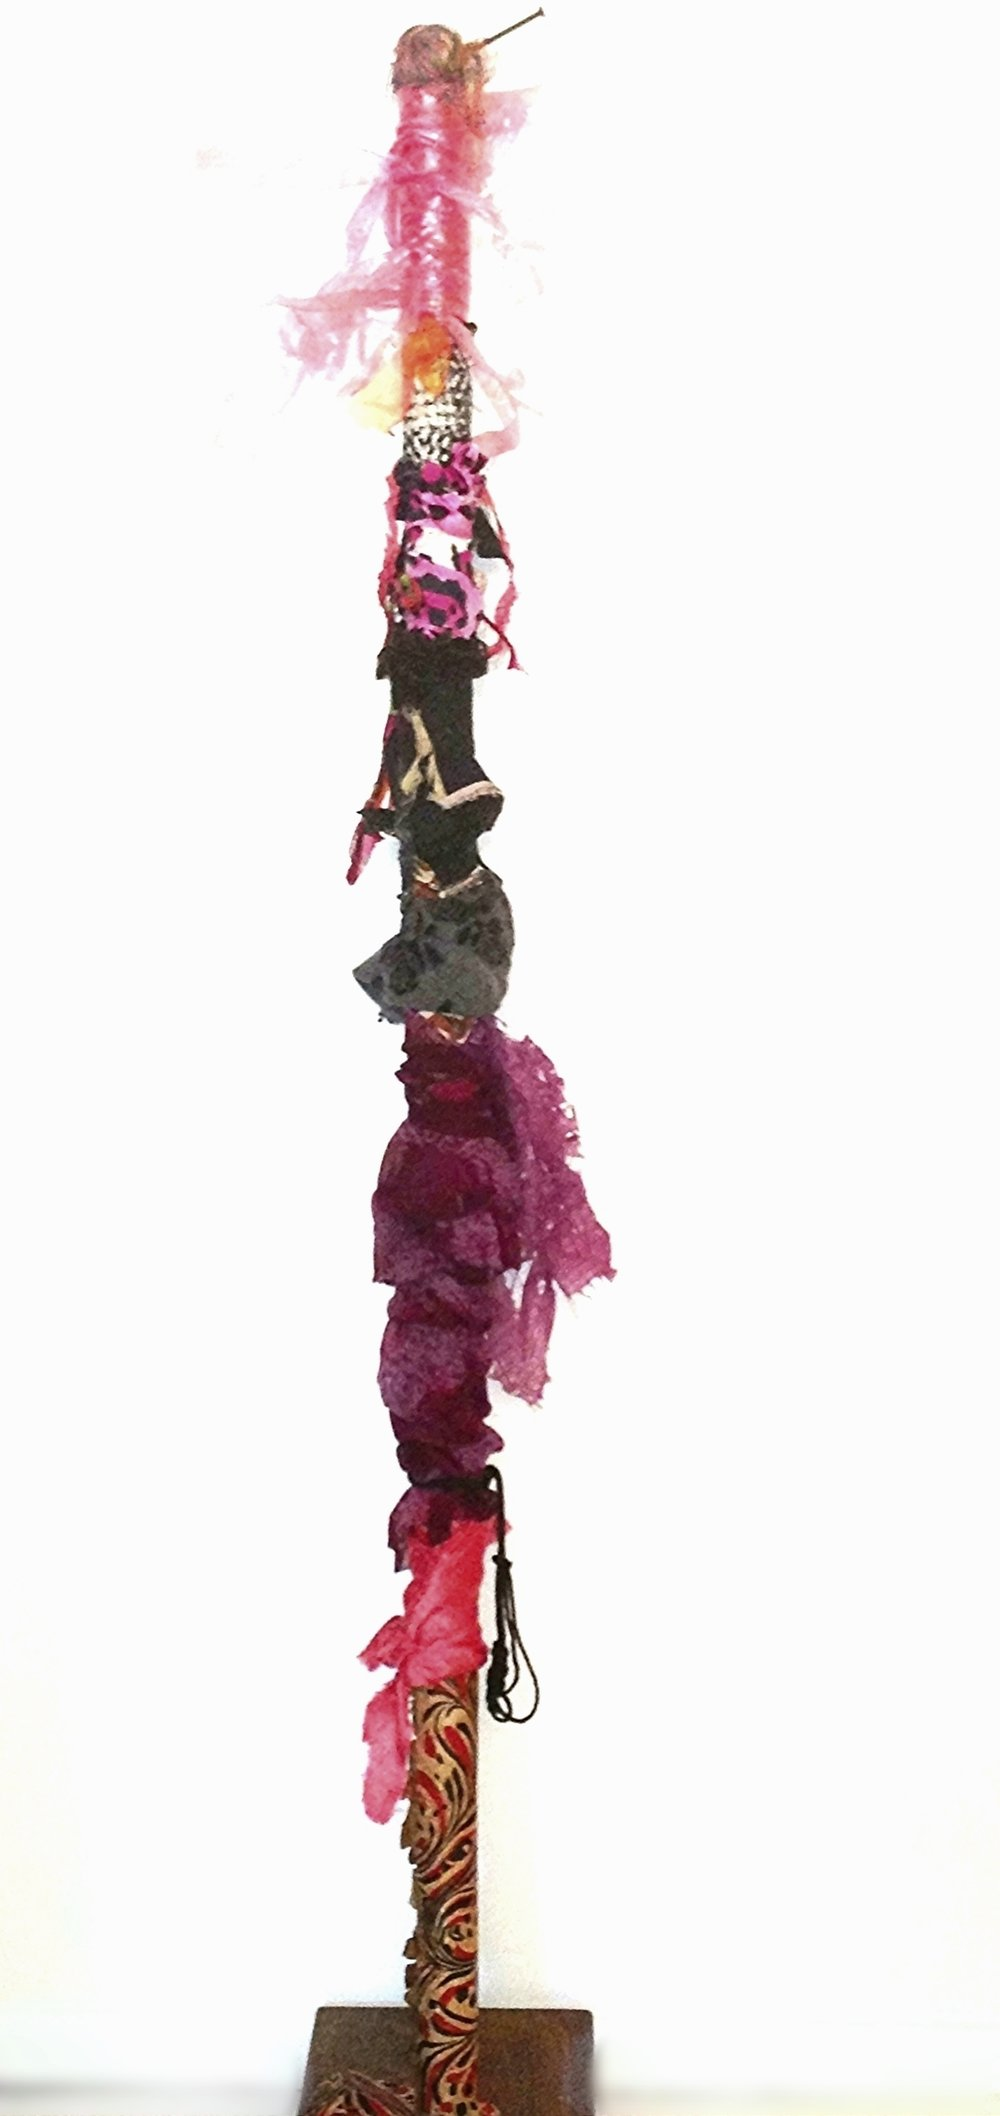 """Wedding Dancer   Recycled textile, Japanese cellophane, rust, vintage thread spool, acrylic, paper, yarn, ribbon, cord, on industrial cardboard tube.  57 x 12"""" round  2015-2018"""